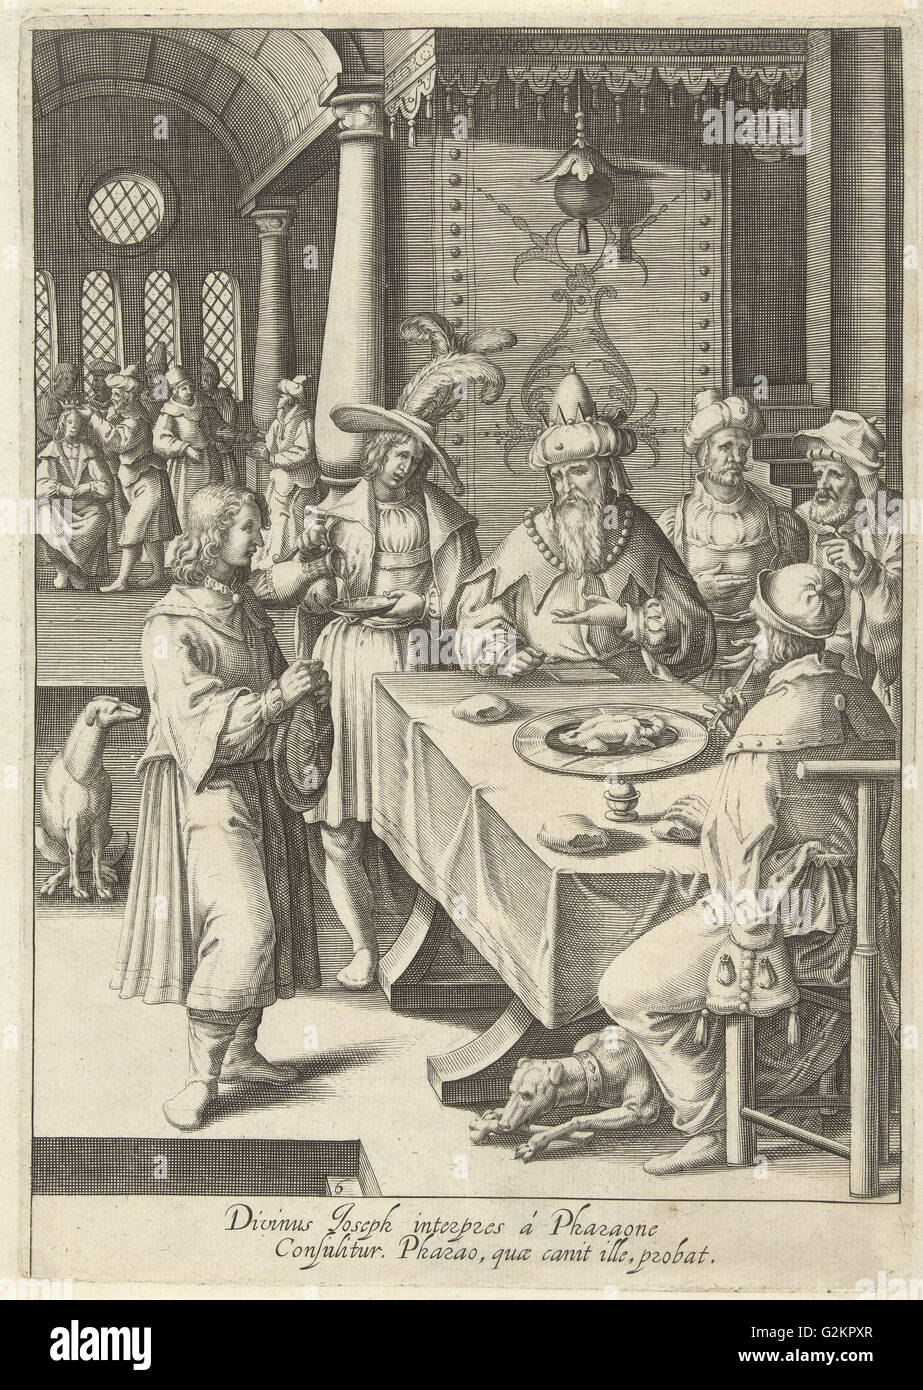 Joseph interprets the dreams of Pharaoh, print maker: Robert de Baudous, Lucas van Leyden, 1591 - 1659 - Stock Image